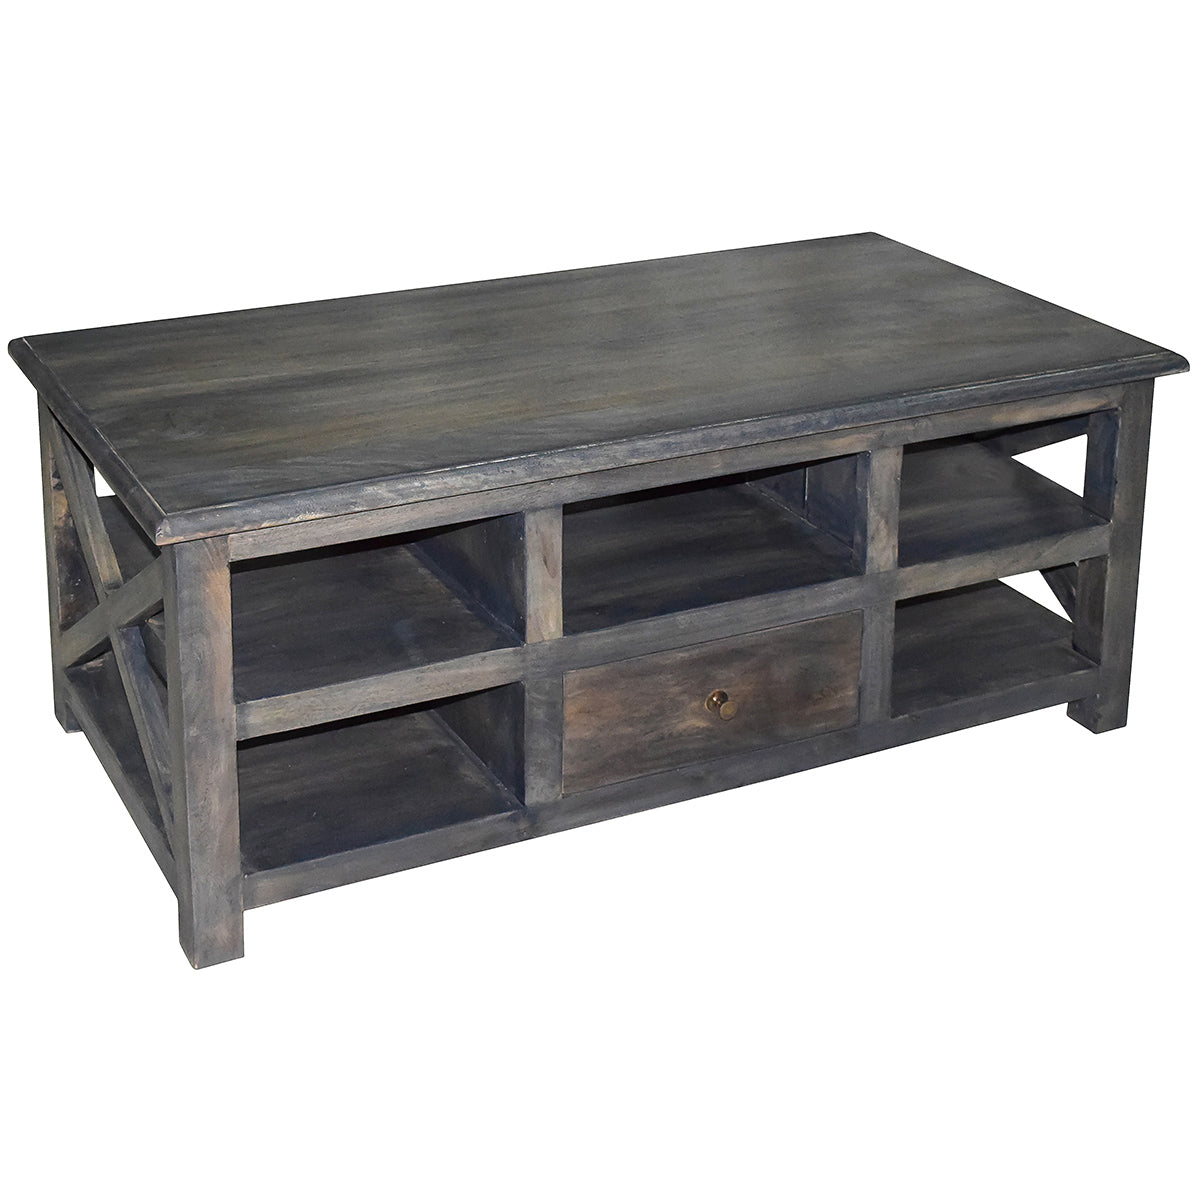 Fillip coffee table gray wash fillip coffee table gray wash geotapseo Images